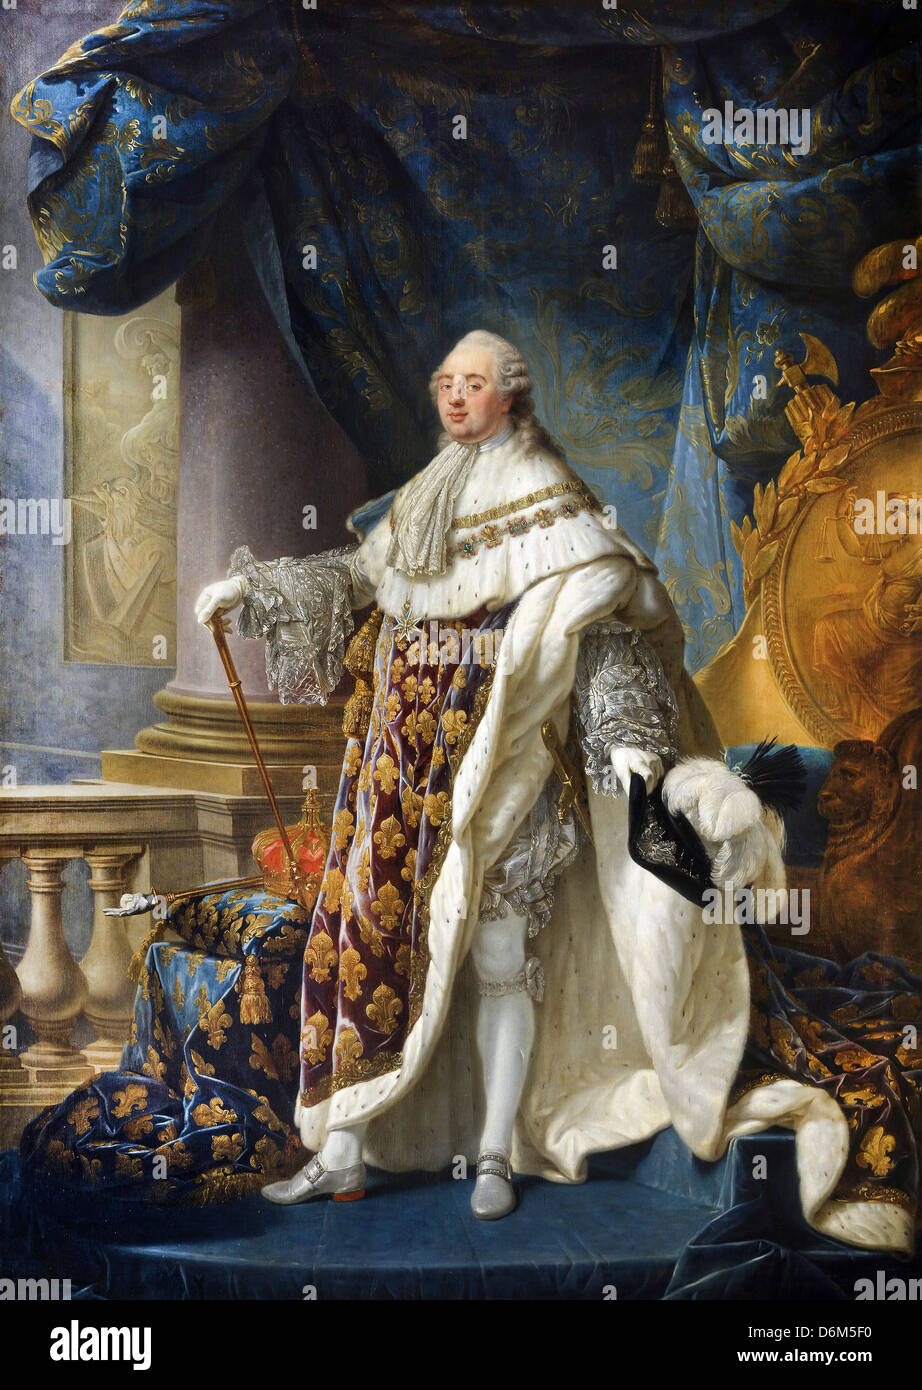 Antoine-François Callet, Louis XVI, King of France and Navarre (1754-1793), wearing his grand royal costume - Stock Image